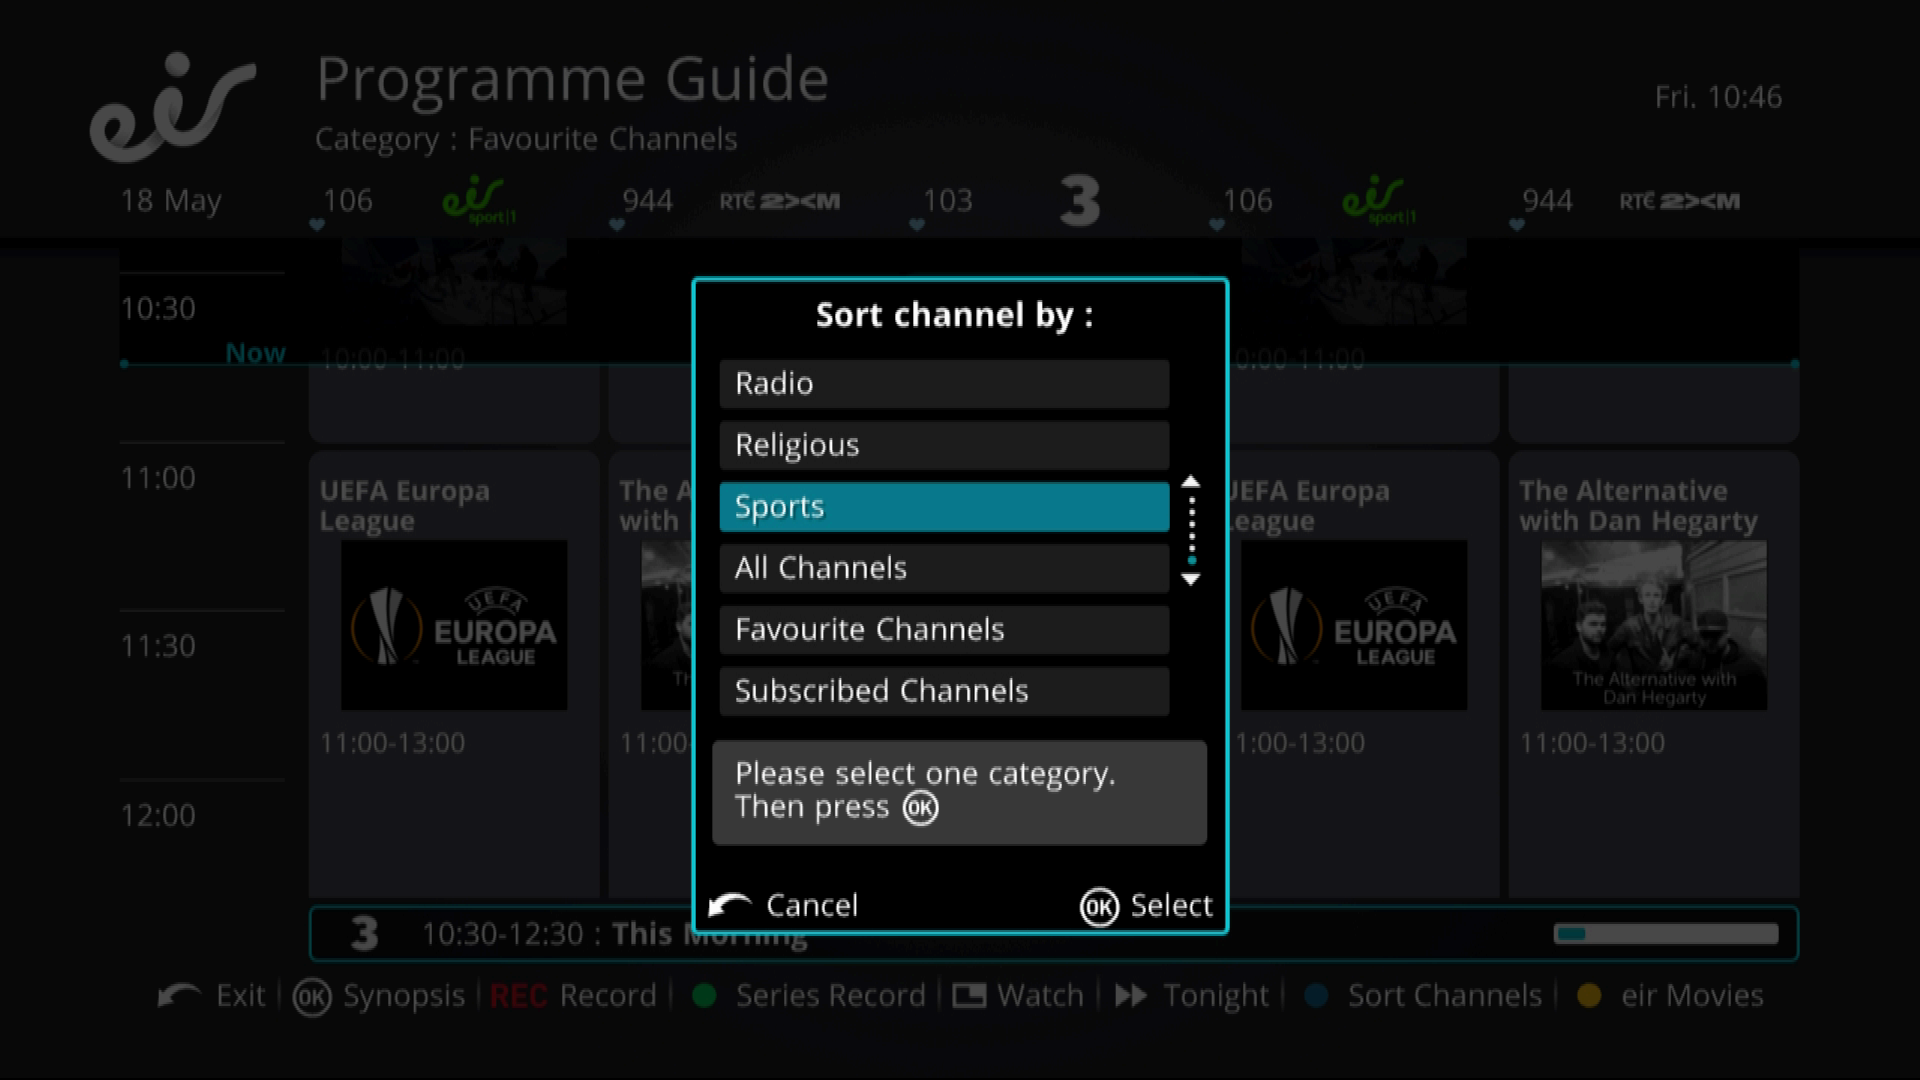 programme guide 2